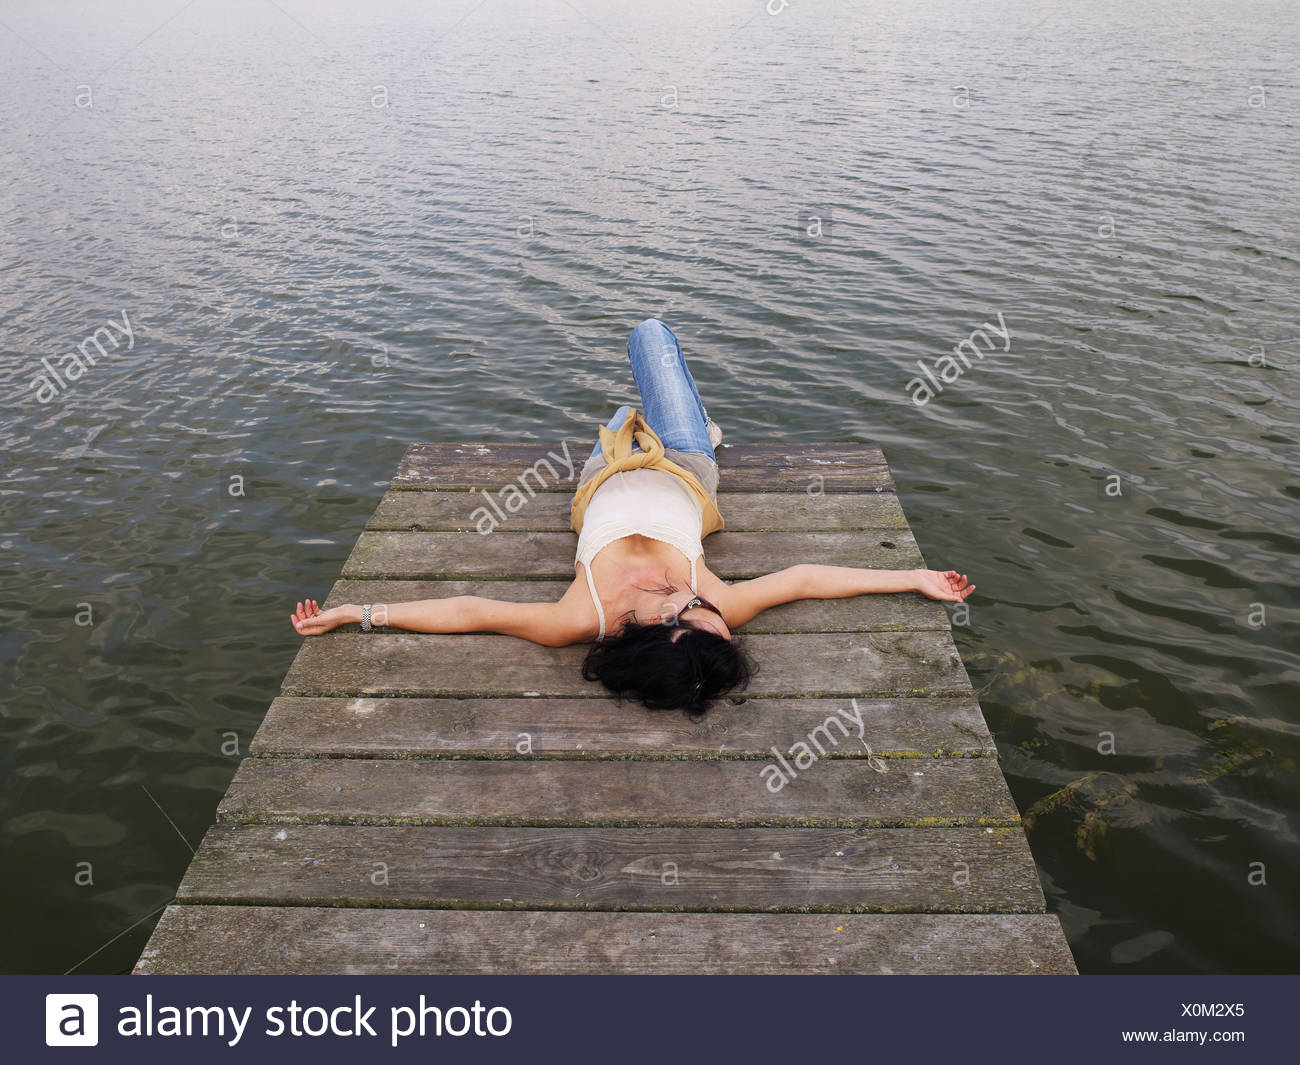 Woman relaxing lying on a wooden pier at a lake, Mecklenburg Lake District, Mecklenburg-Western Pomerania, Germany, Europe - Stock Image